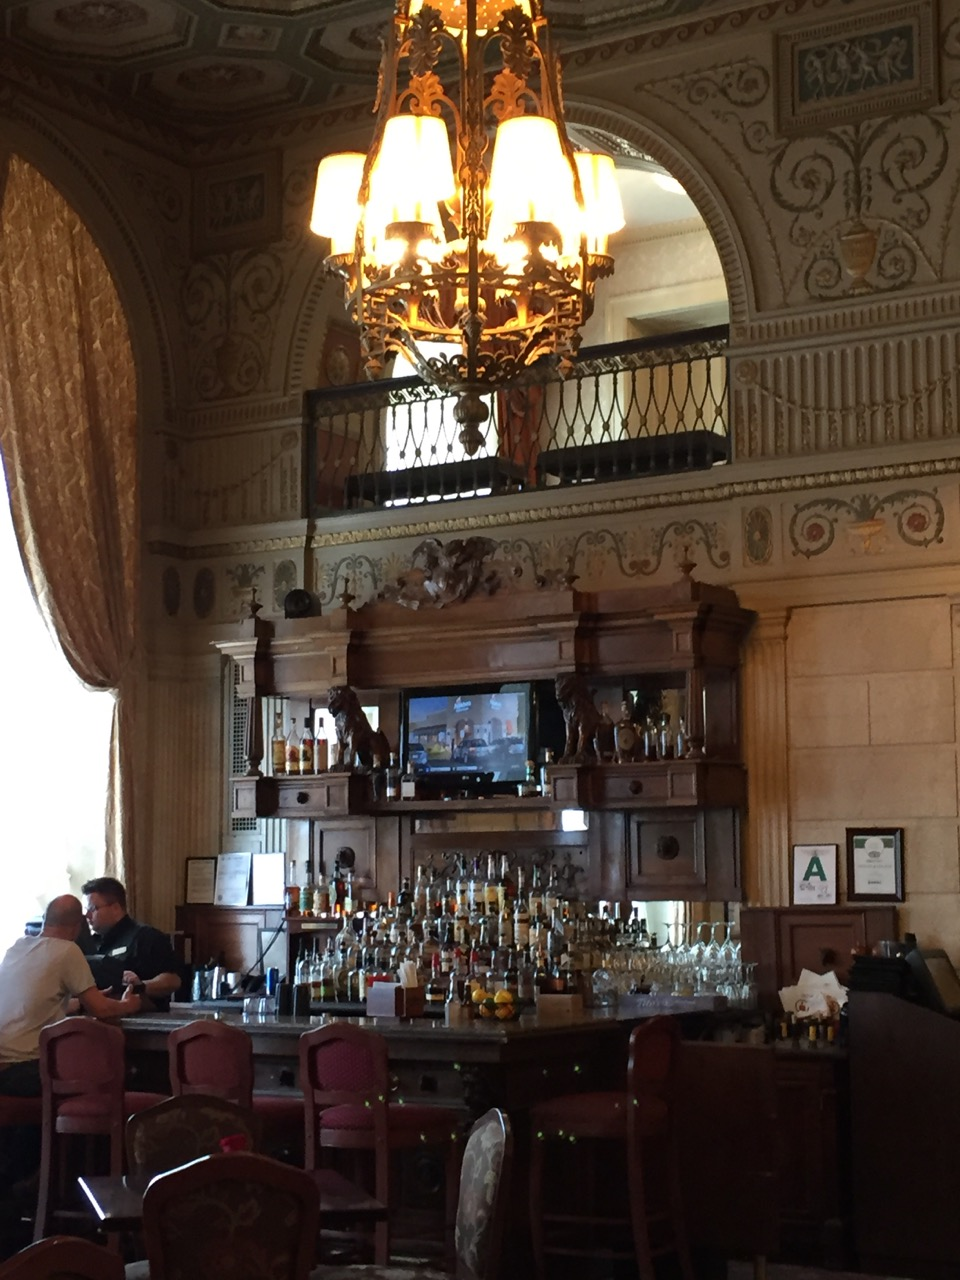 The lobby bar in the historical Brown Hotel.